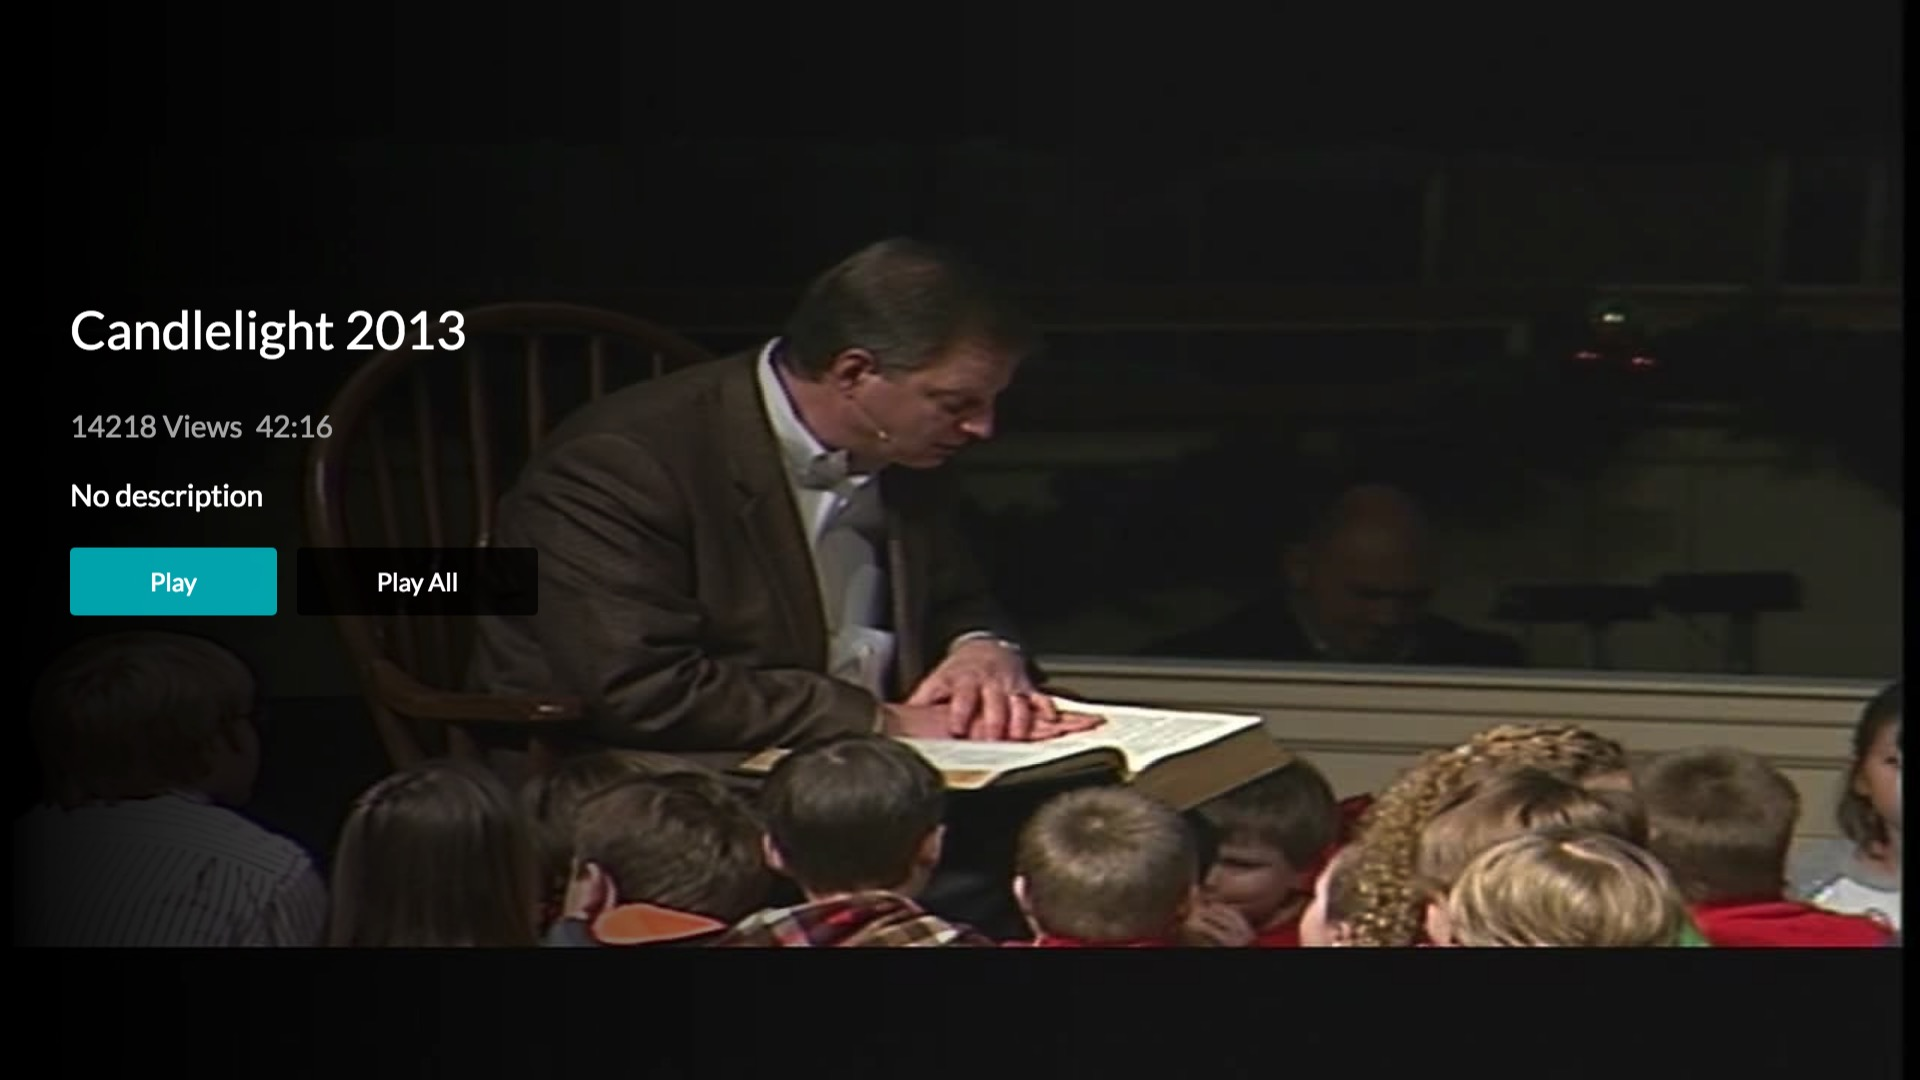 Southern Baptist Churches Screenshot 003